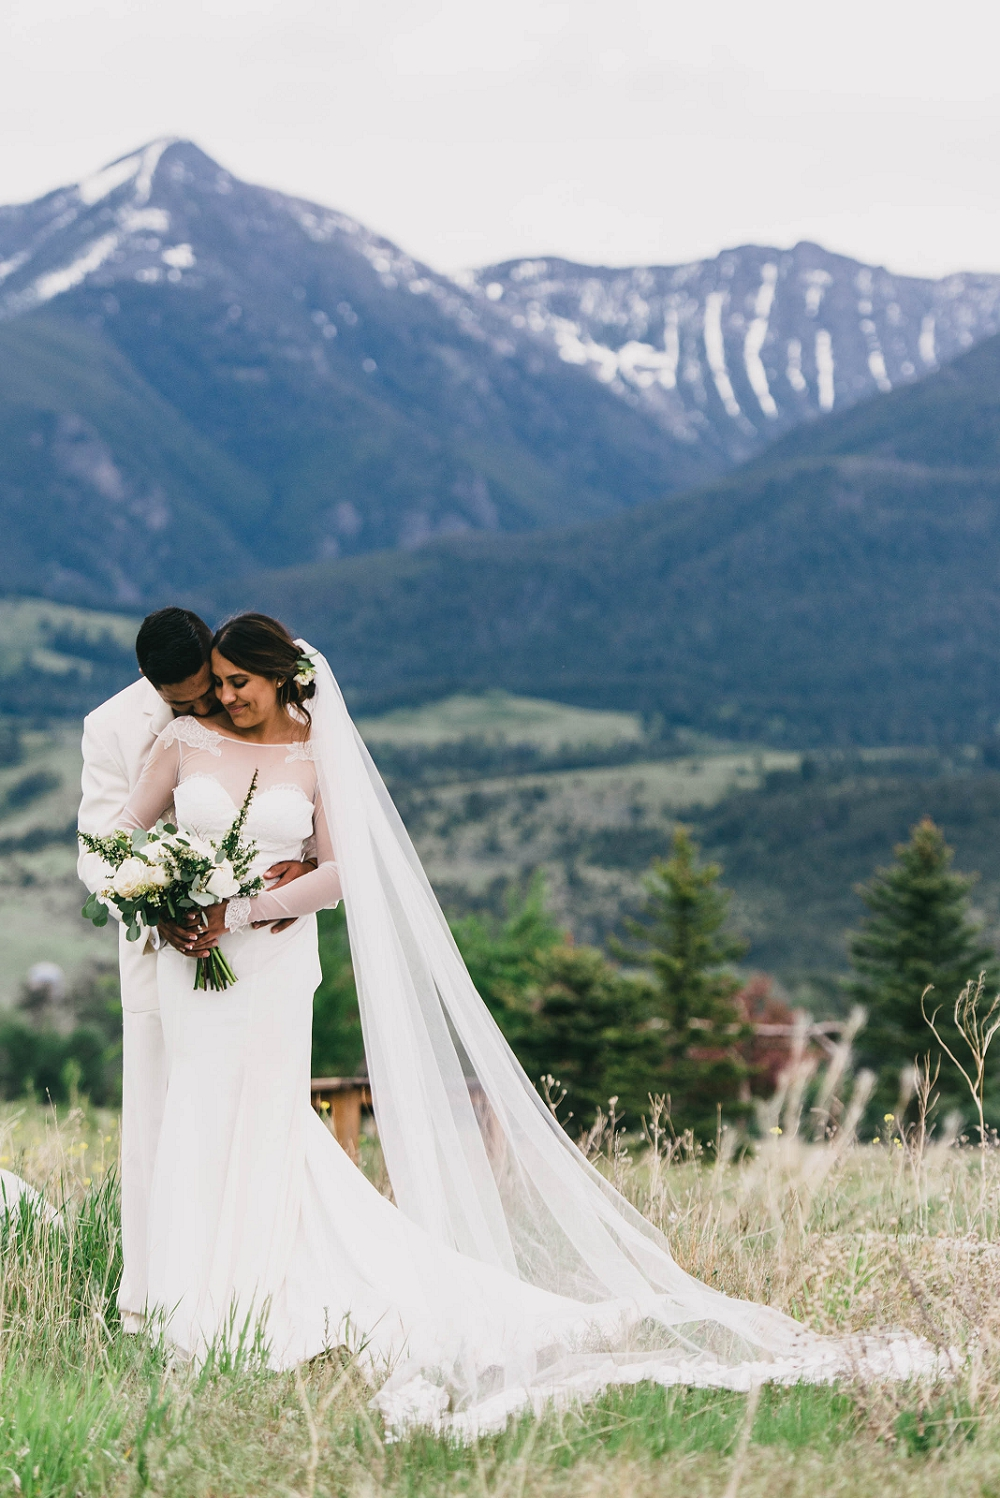 Jennifer_Mooney_Photography__Elegant_Bozeman_Montana_Wedding_109.jpg